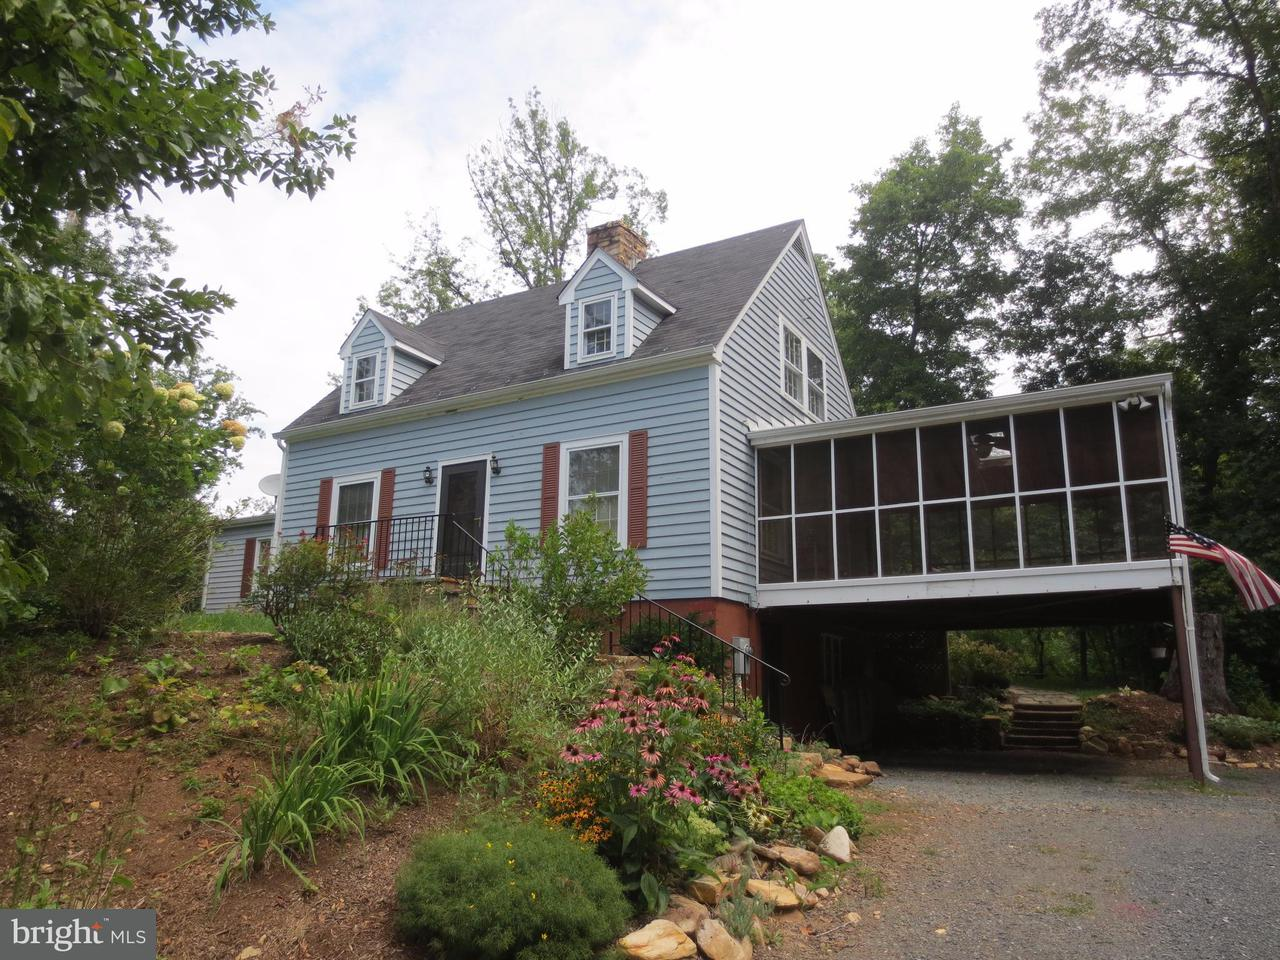 Single Family Home for Sale at 5515 BEVERLEYS MILL Road 5515 BEVERLEYS MILL Road Broad Run, Virginia 20137 United States